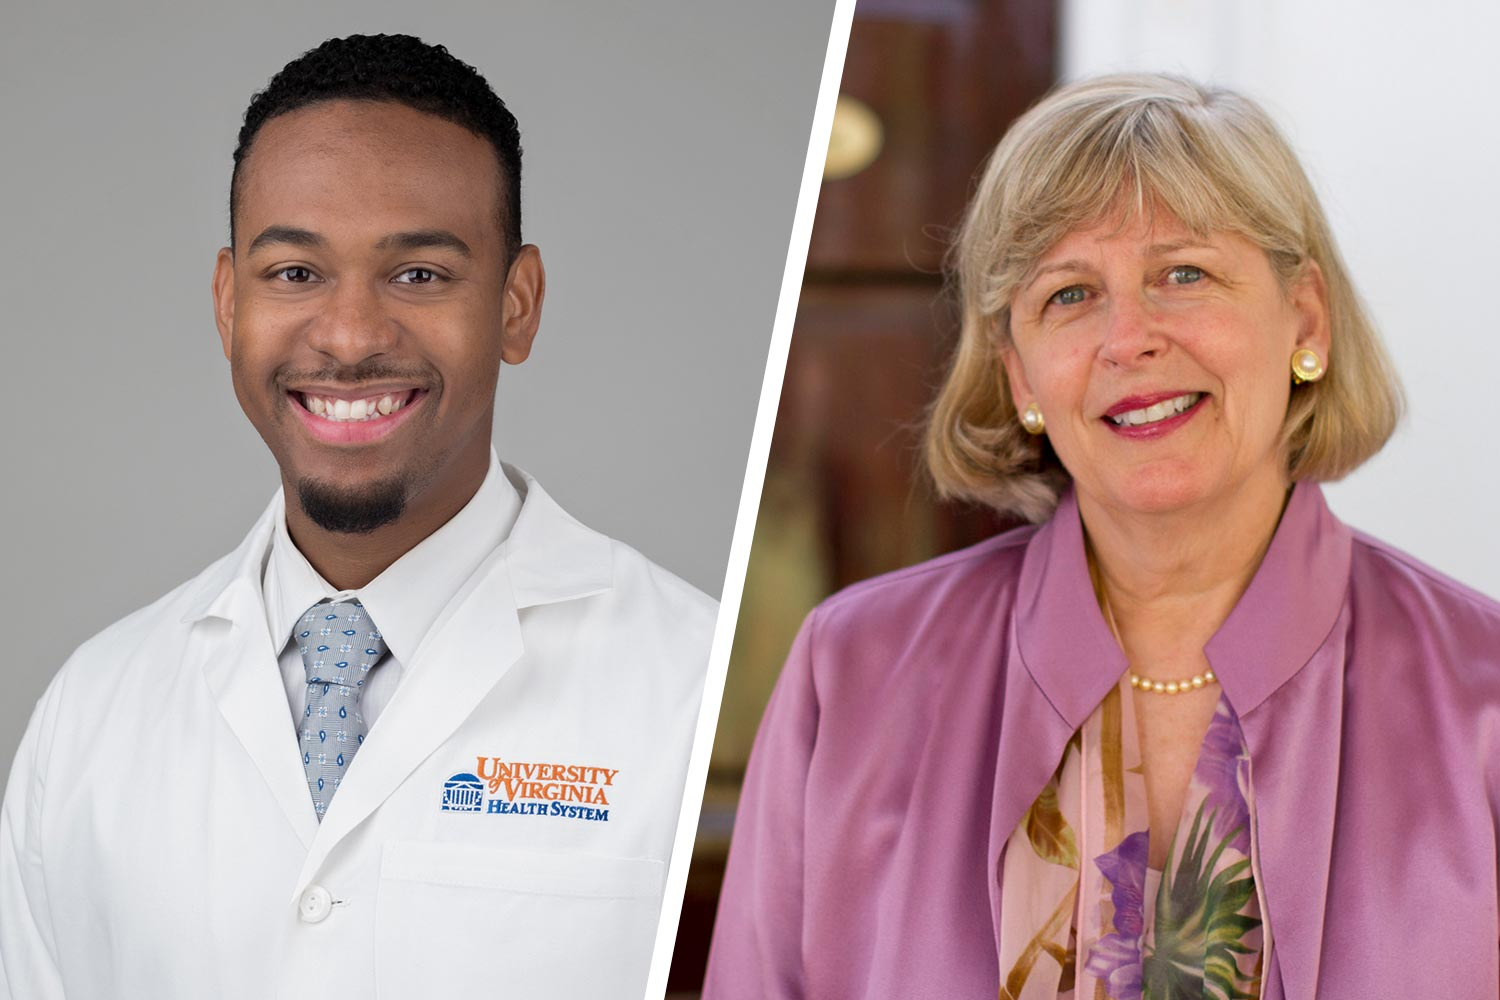 Medical School professor Dr. B. Cameron Webb, left, will address Arts & Sciences graduates on May 18, while retiring School of Nursing Dean Dorrie Fontaine will speak to the rest of the Class of 2019 on May 19. (Contributed photos)